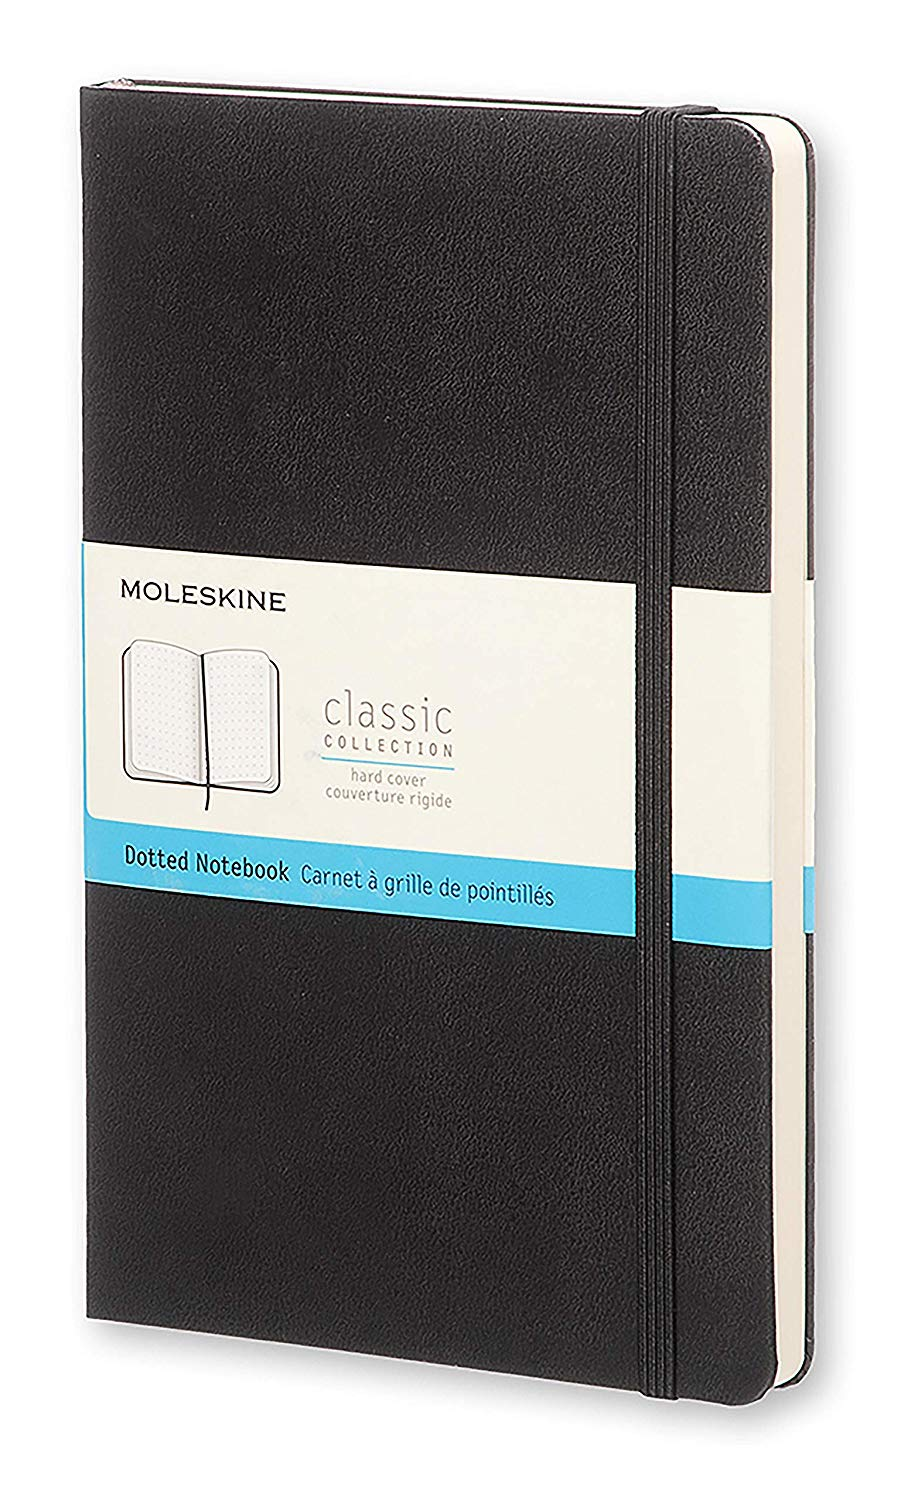 Moleskin Dotted Hard Cover Notebook is a great budget friendly alternative to the Leuchtturm1917 for bullet journals